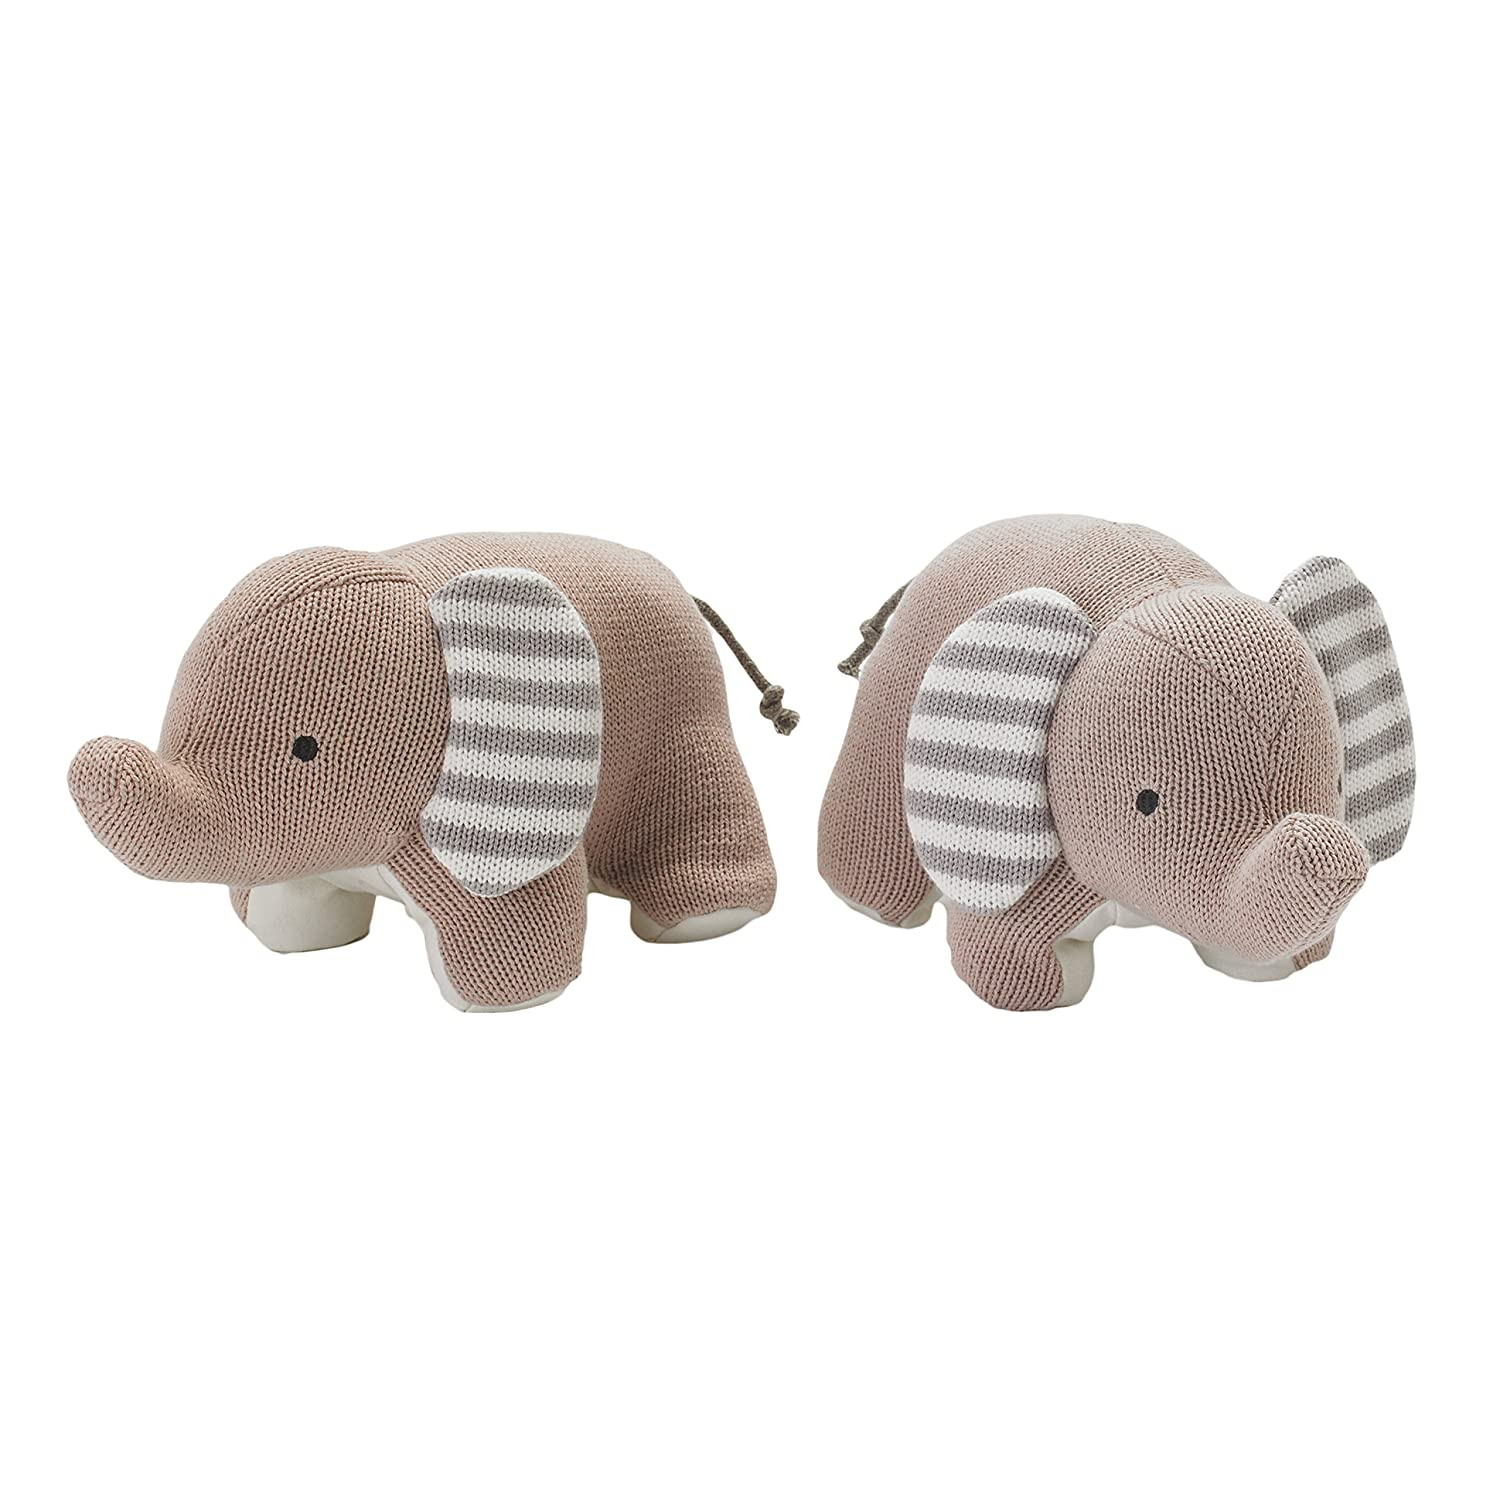 Lolli Living Elephant Bookend Friends. Knitted Elephant Bookends for Baby Nursery Accent (6x8.7x8.7 inch). 501010